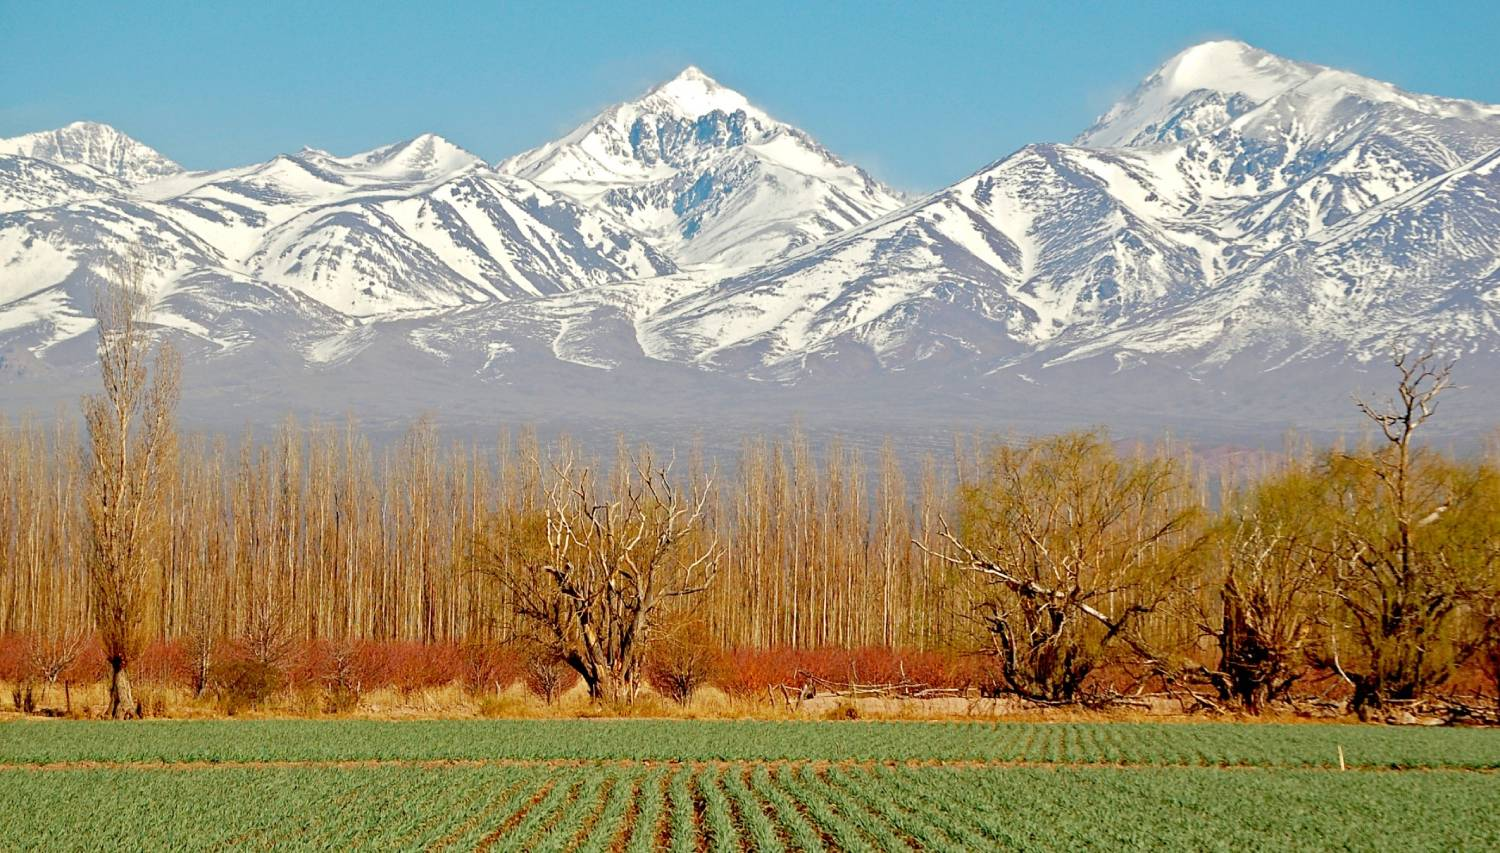 Mendoza - The Best Places To Visit In Argentina